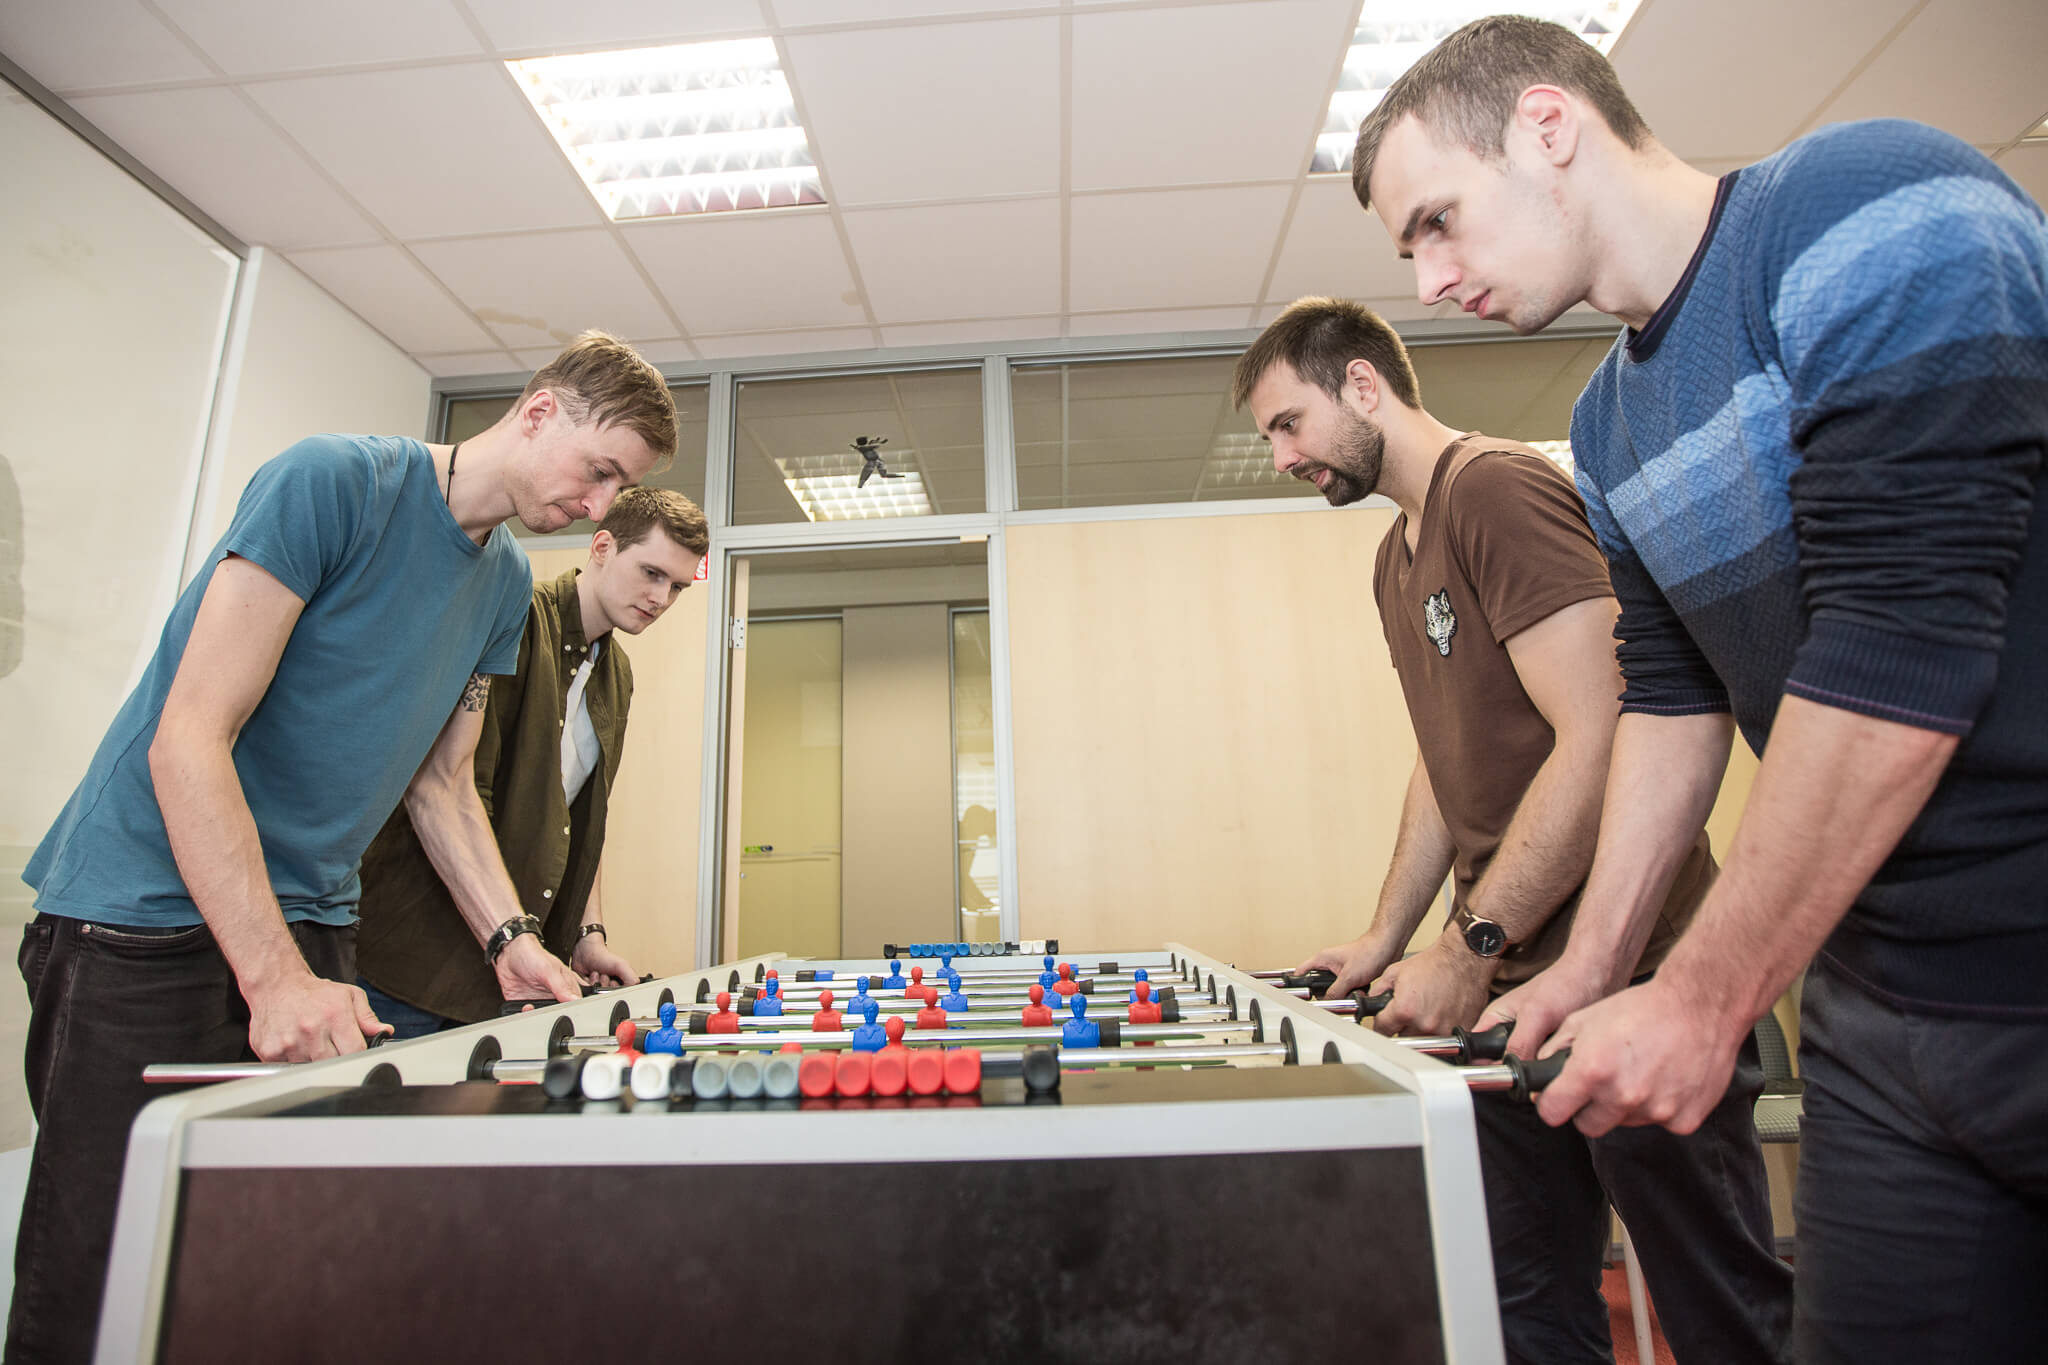 E-Bros team playing foosball